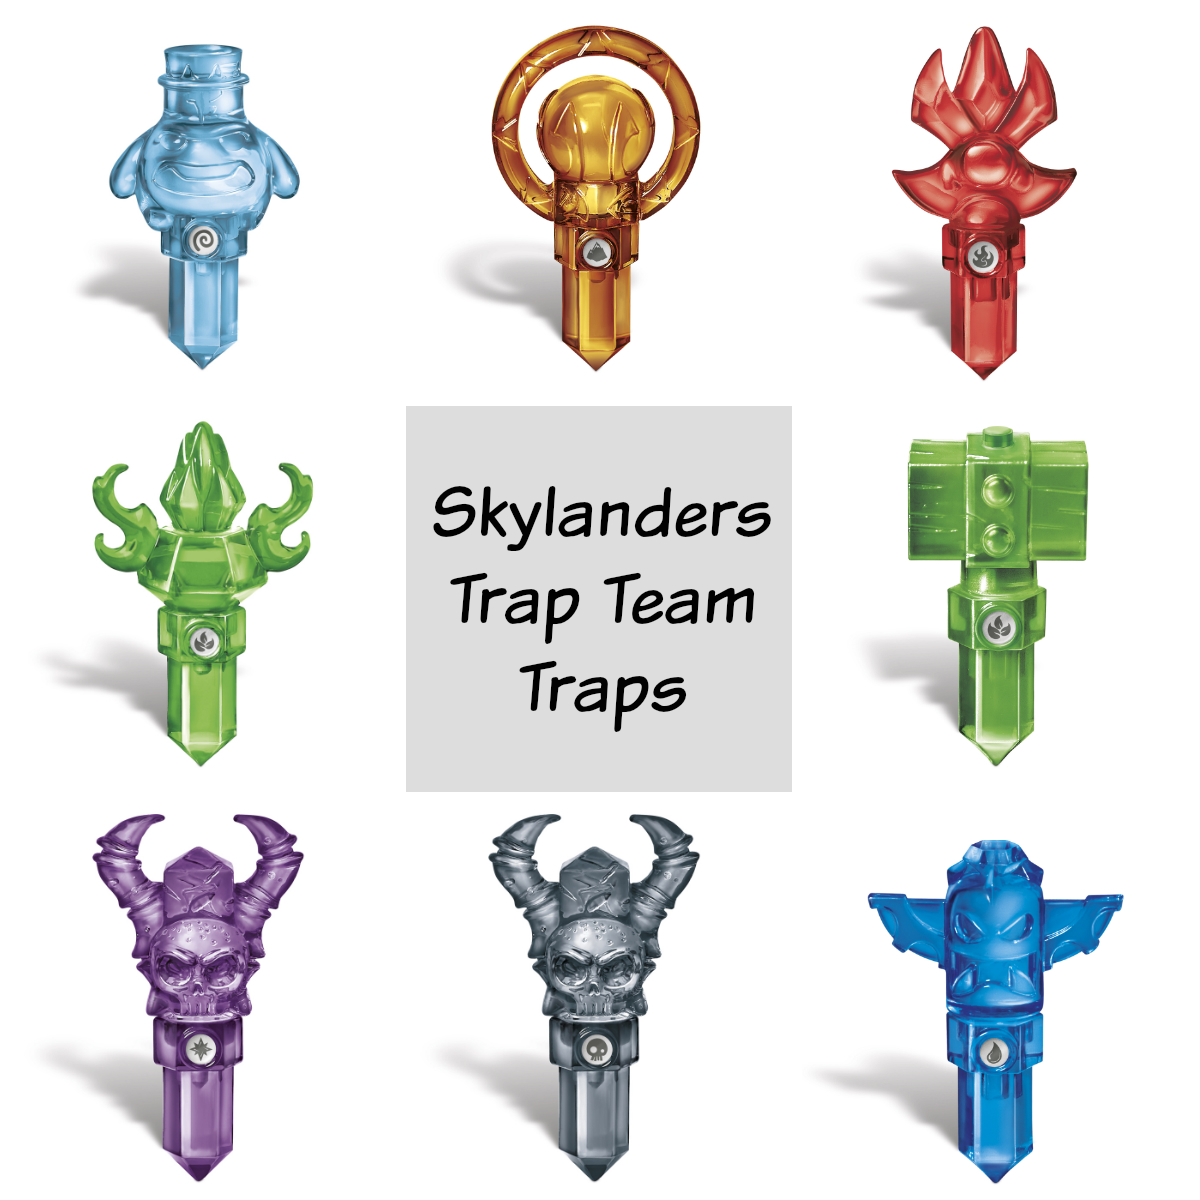 Skylanders Trap Team Video Game | AnnMarie John